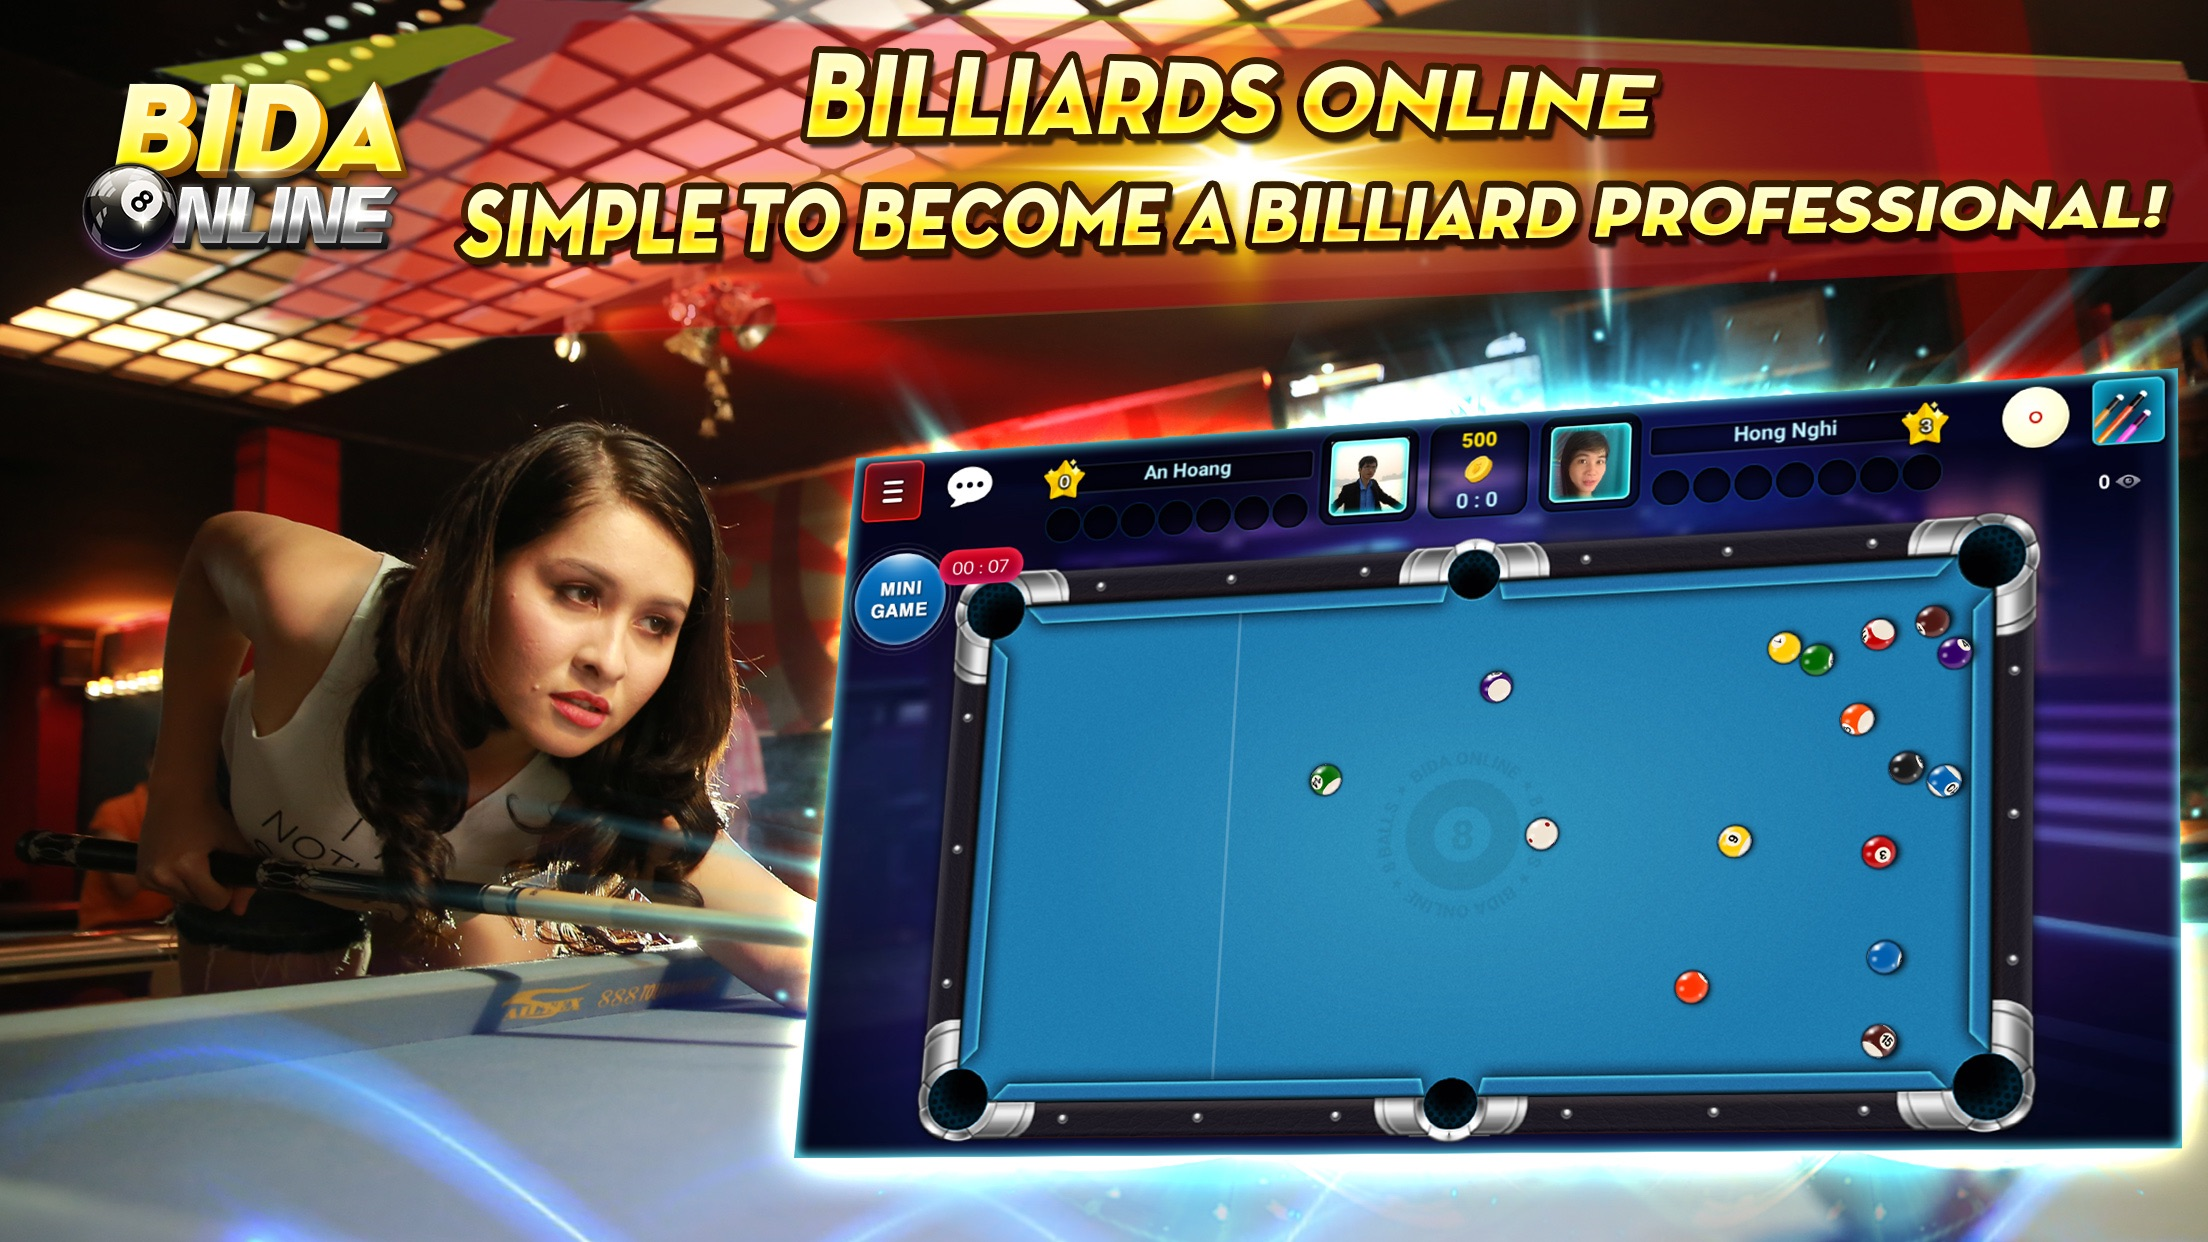 Bida online - 8 pool pro, card Screenshot